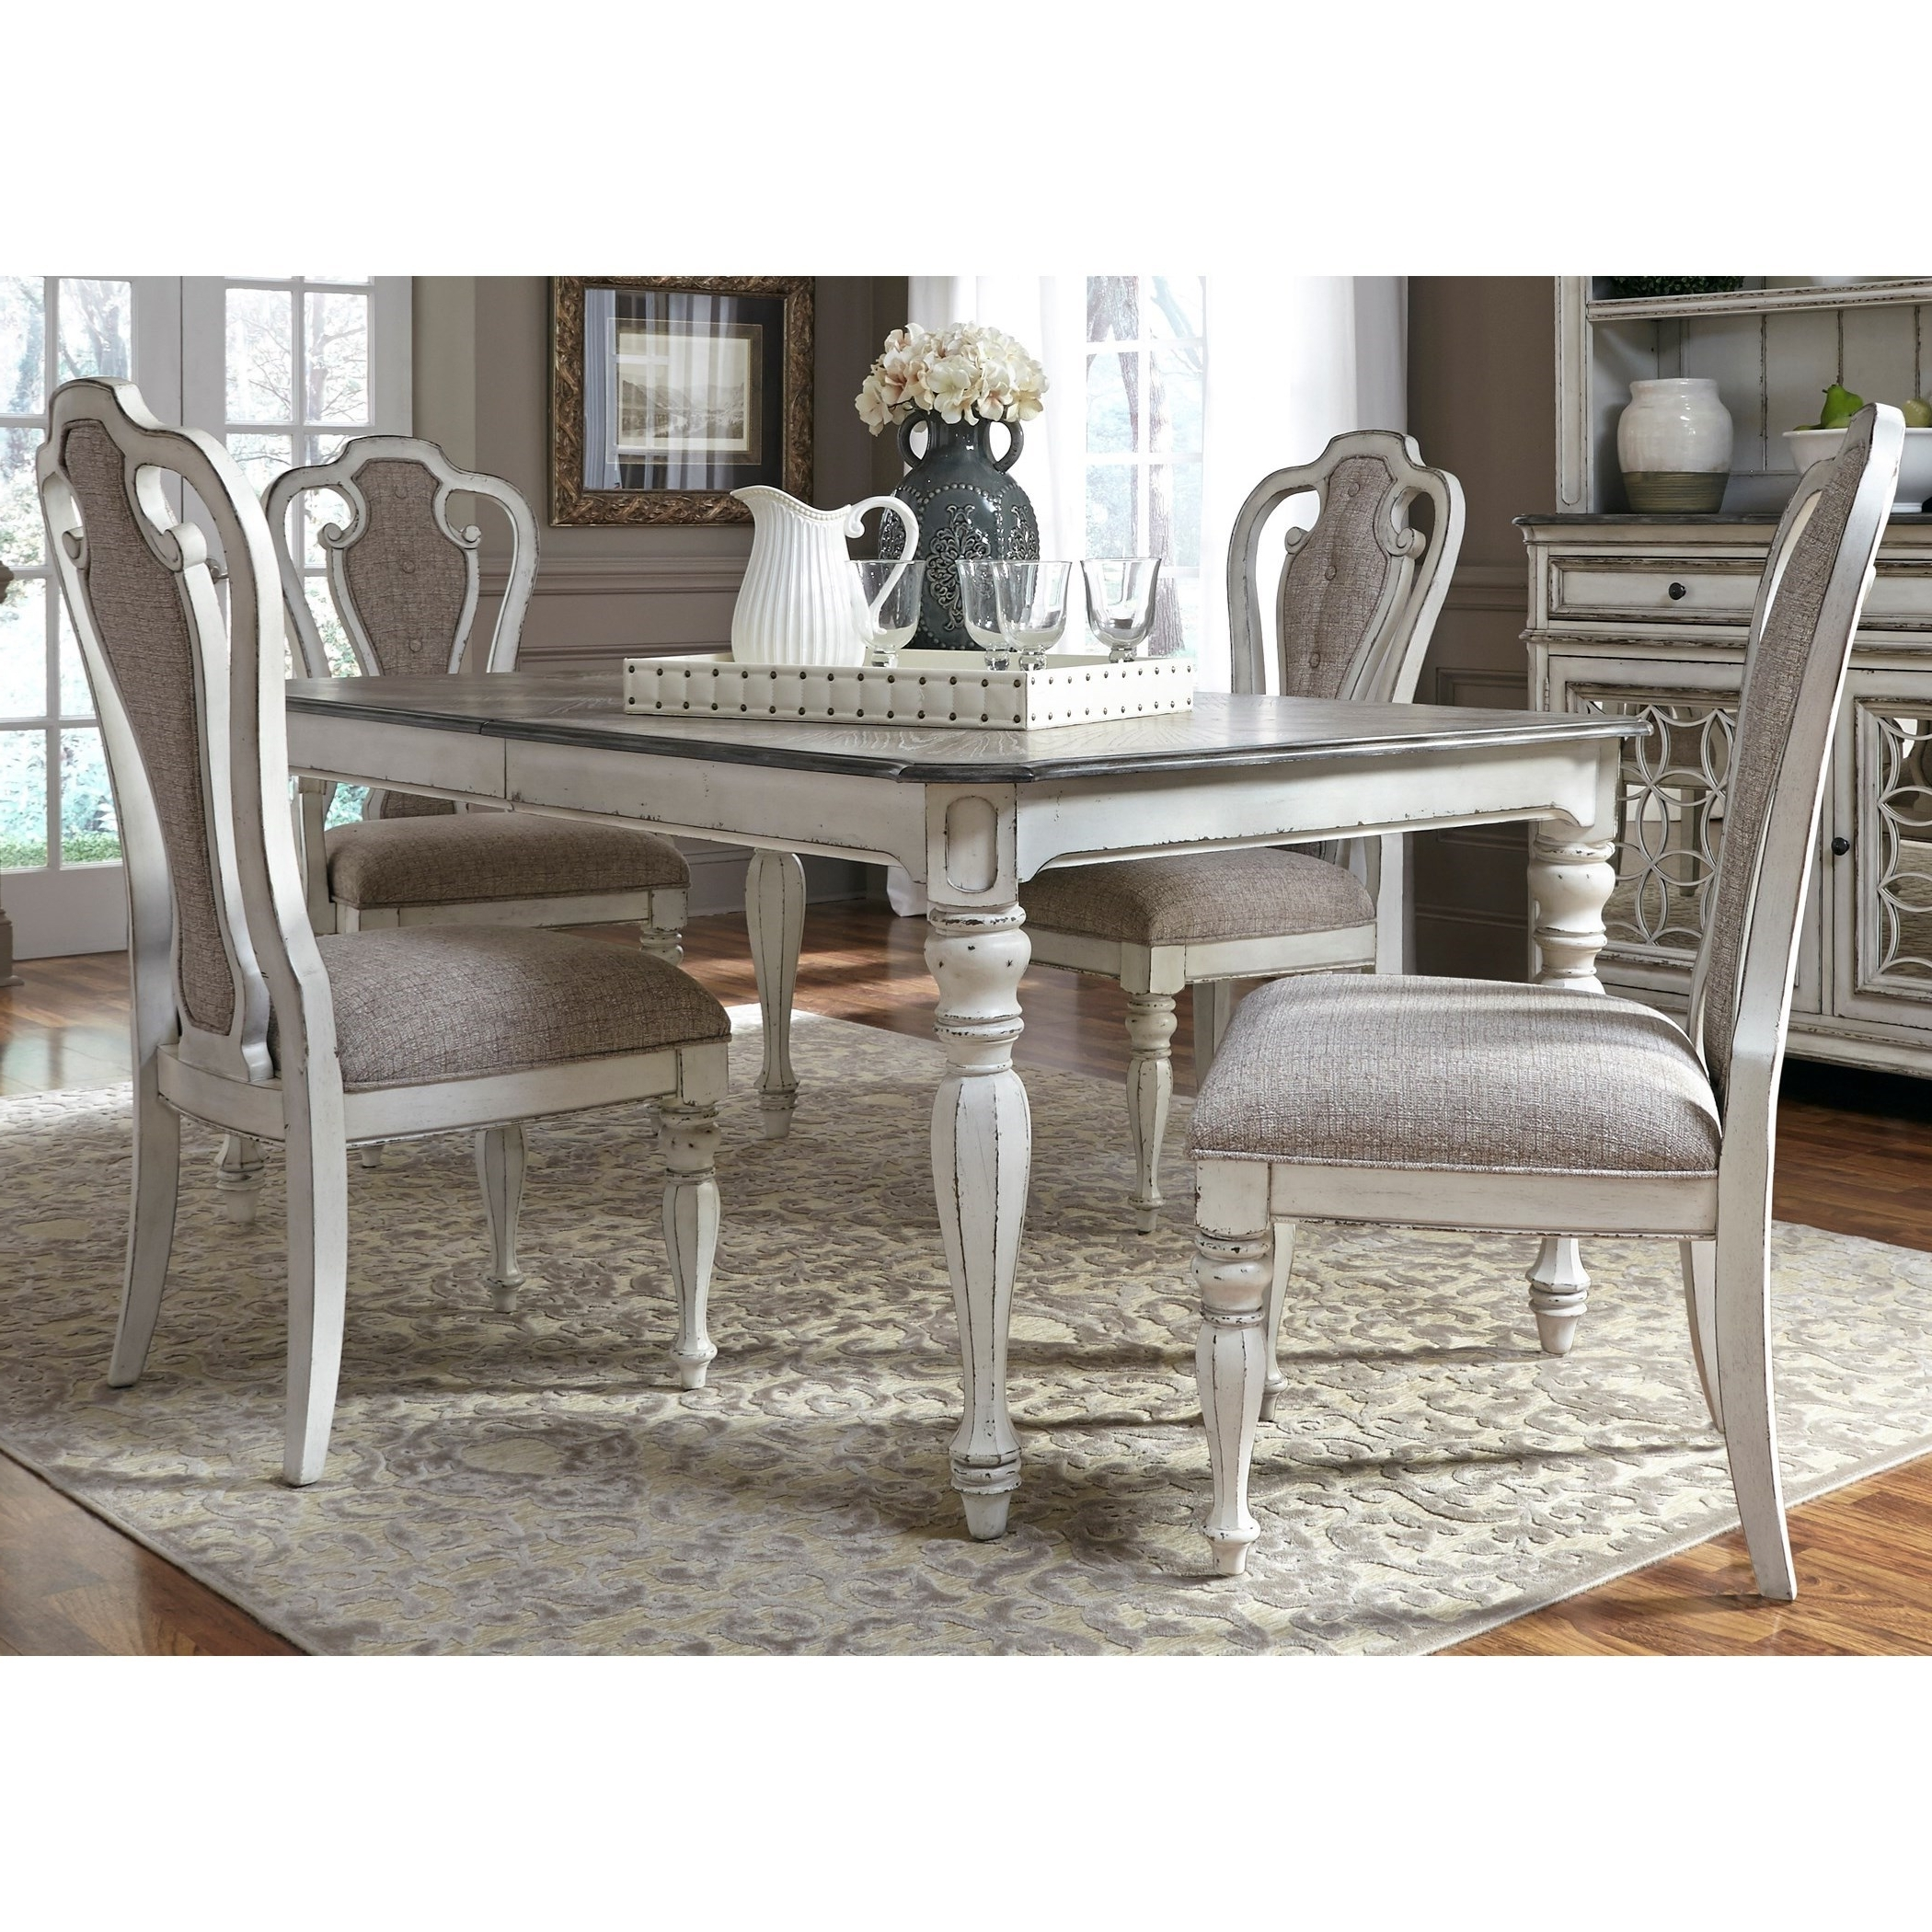 Jaxon 5 Piece Extension Counter Sets With Wood Stools Within Latest Liberty Furniture Magnolia Manor Dining 5 Piece Rectangular Table (View 19 of 25)